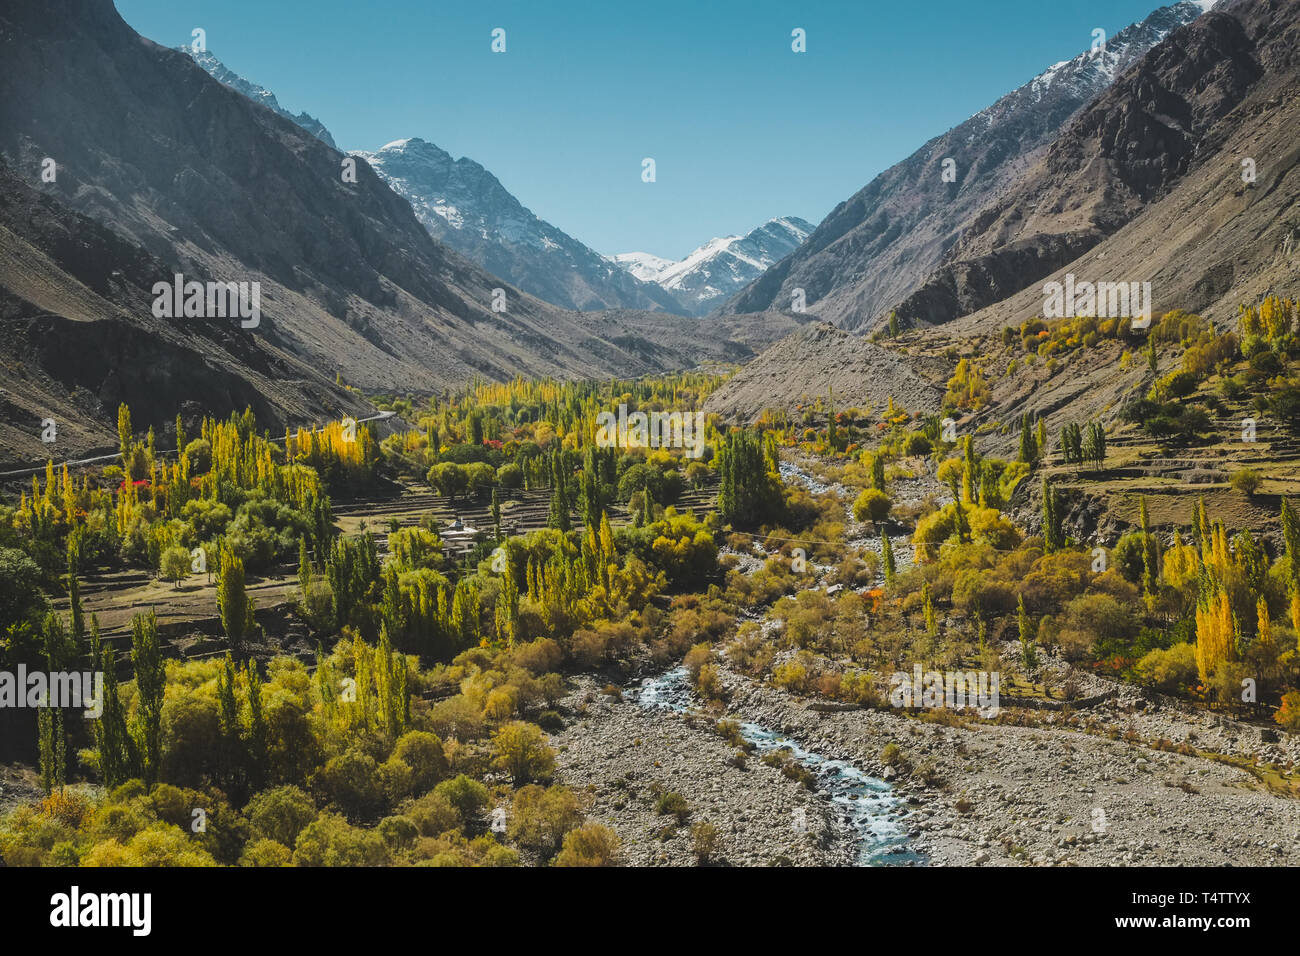 Nature landscape view of yellow and green foliage in autumn with a stream surrounded by mountains in Karakoram range,Skardu. Gilgit Baltistan,Pakistan. - Stock Image